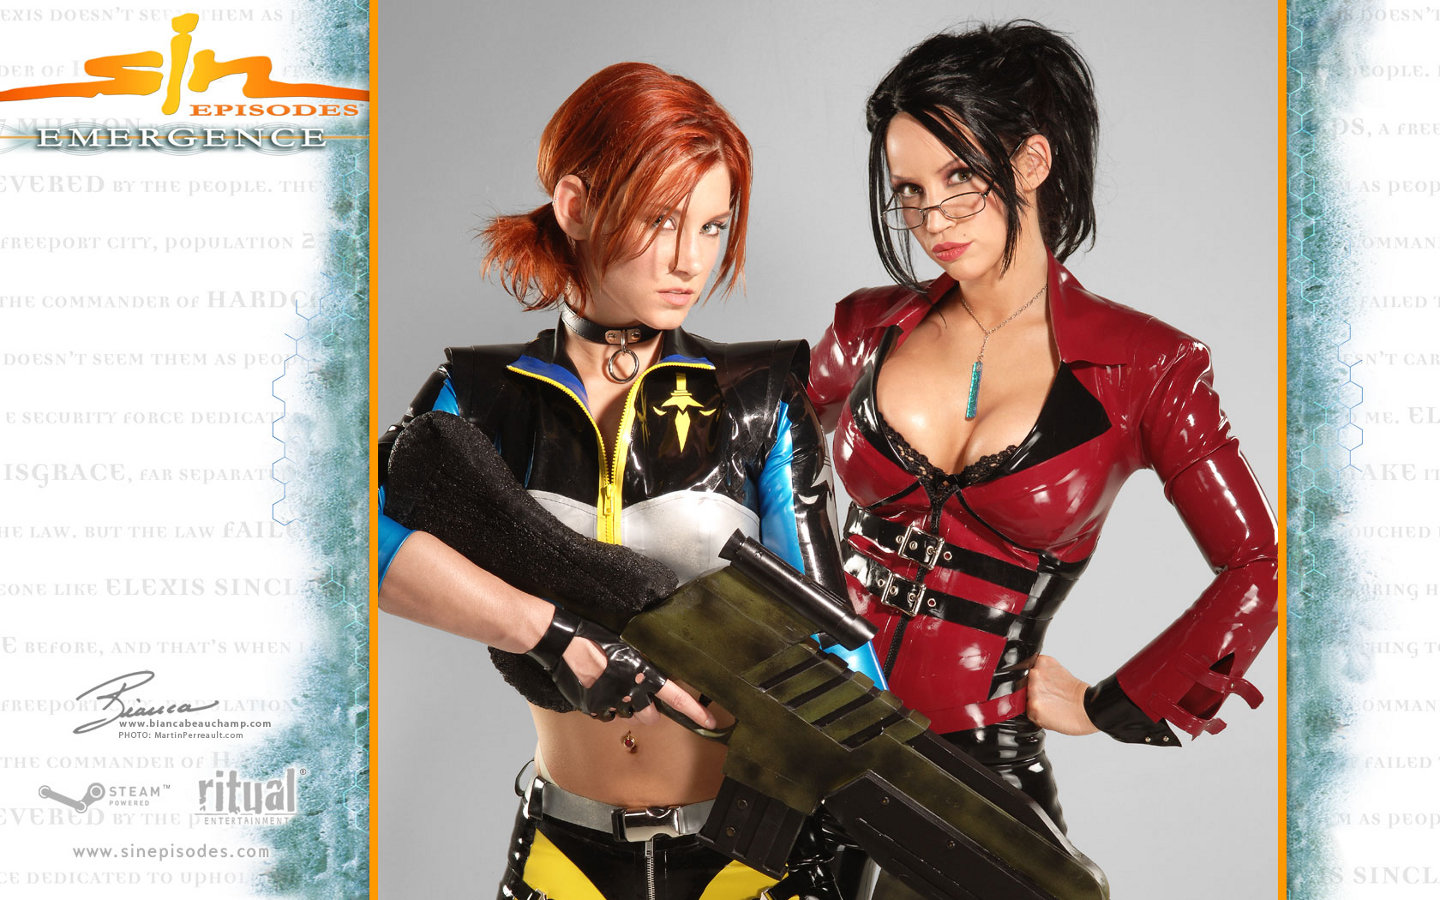 Sin Cosplay Elexis Sinclaire Double Trouble With Jessica Starring Bianca Beauchamp by Martin Perreault